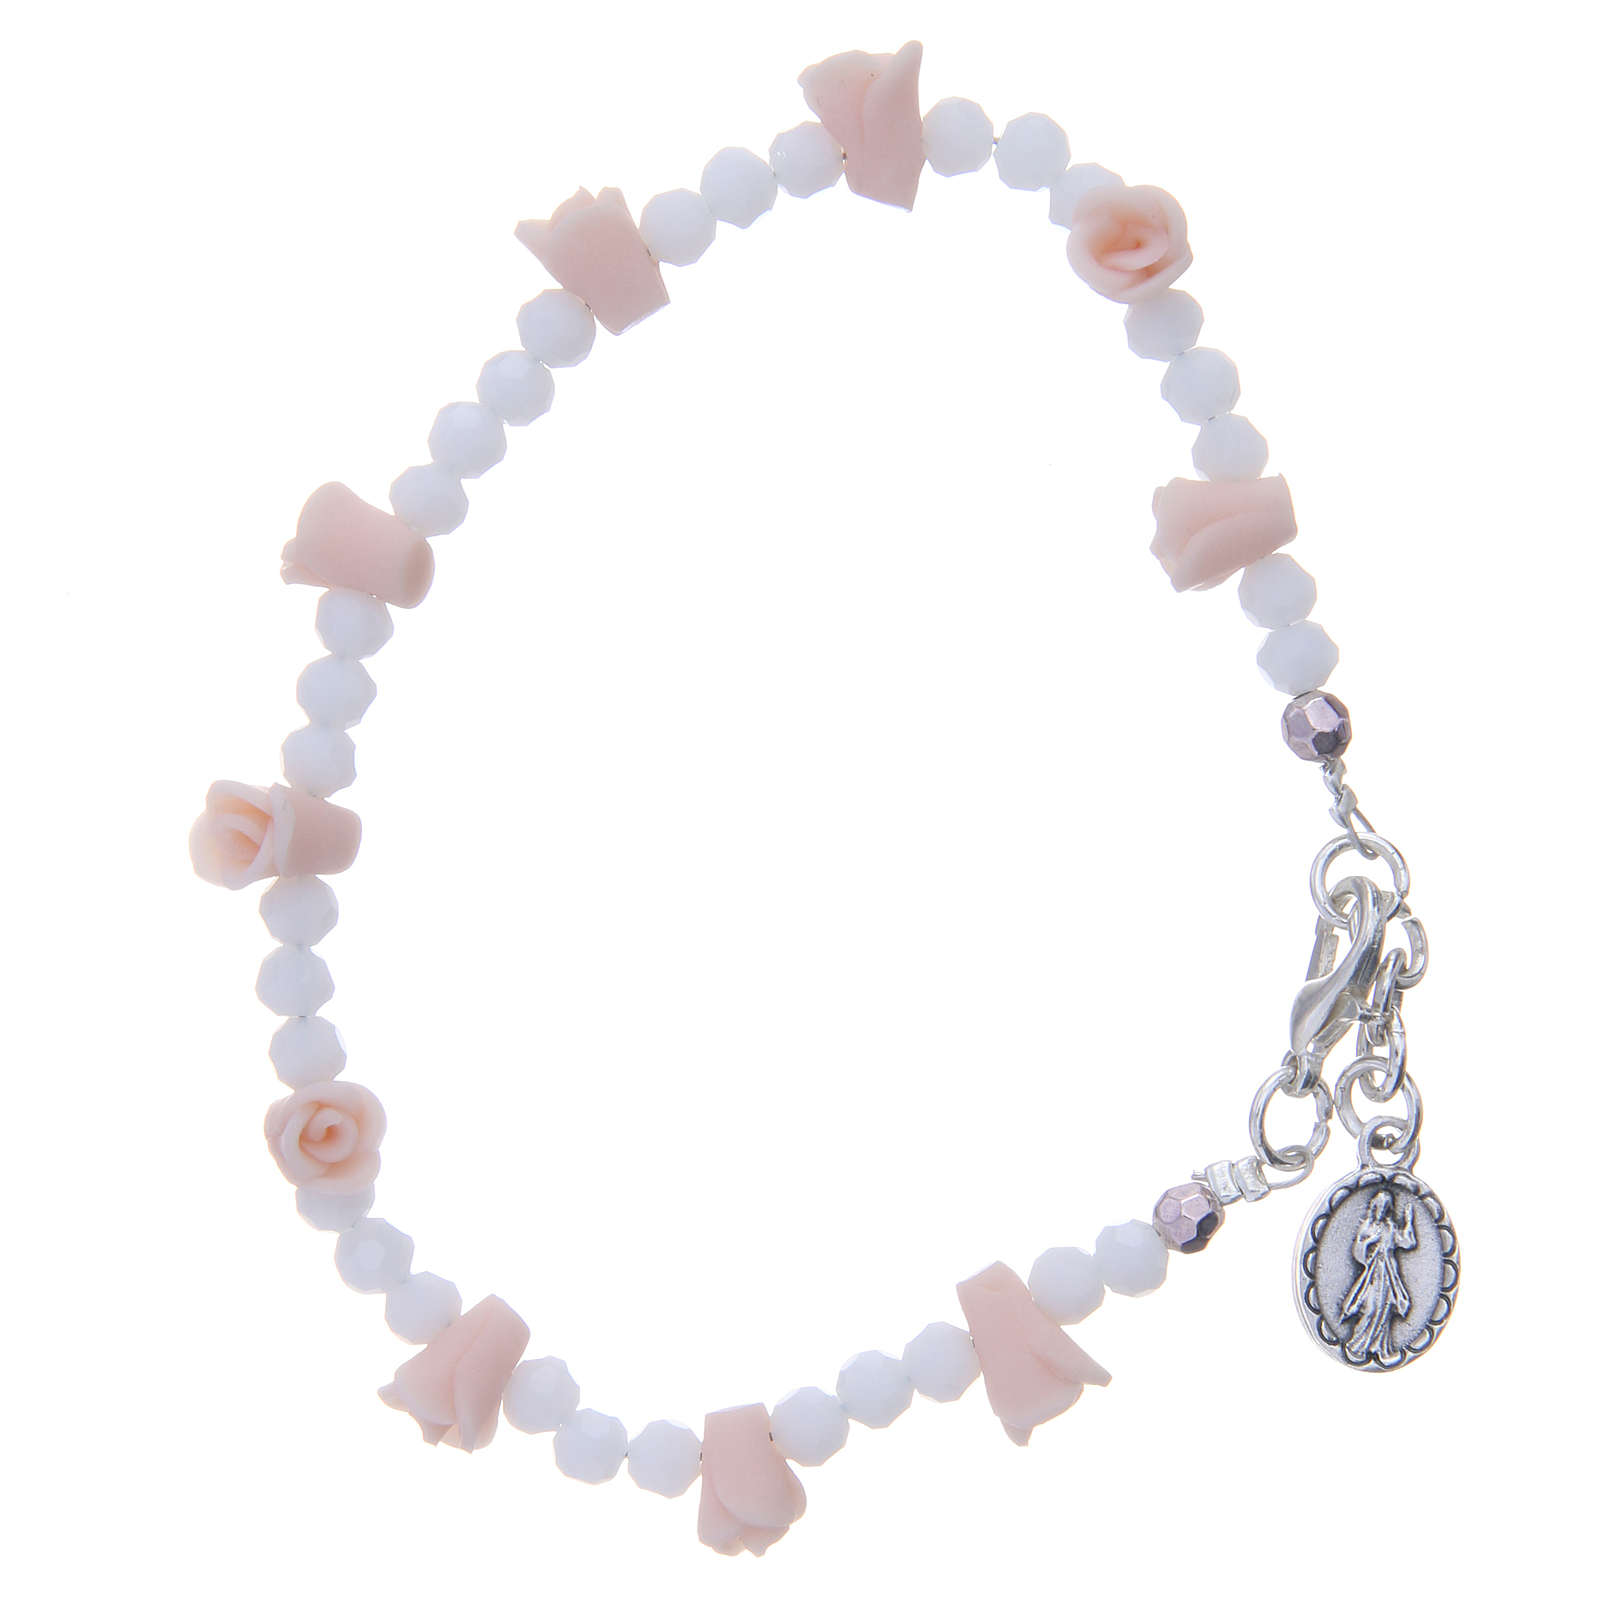 Medjugorje Rosary necklace with ceramic roses, crystal grains and icon of Our Lady 4